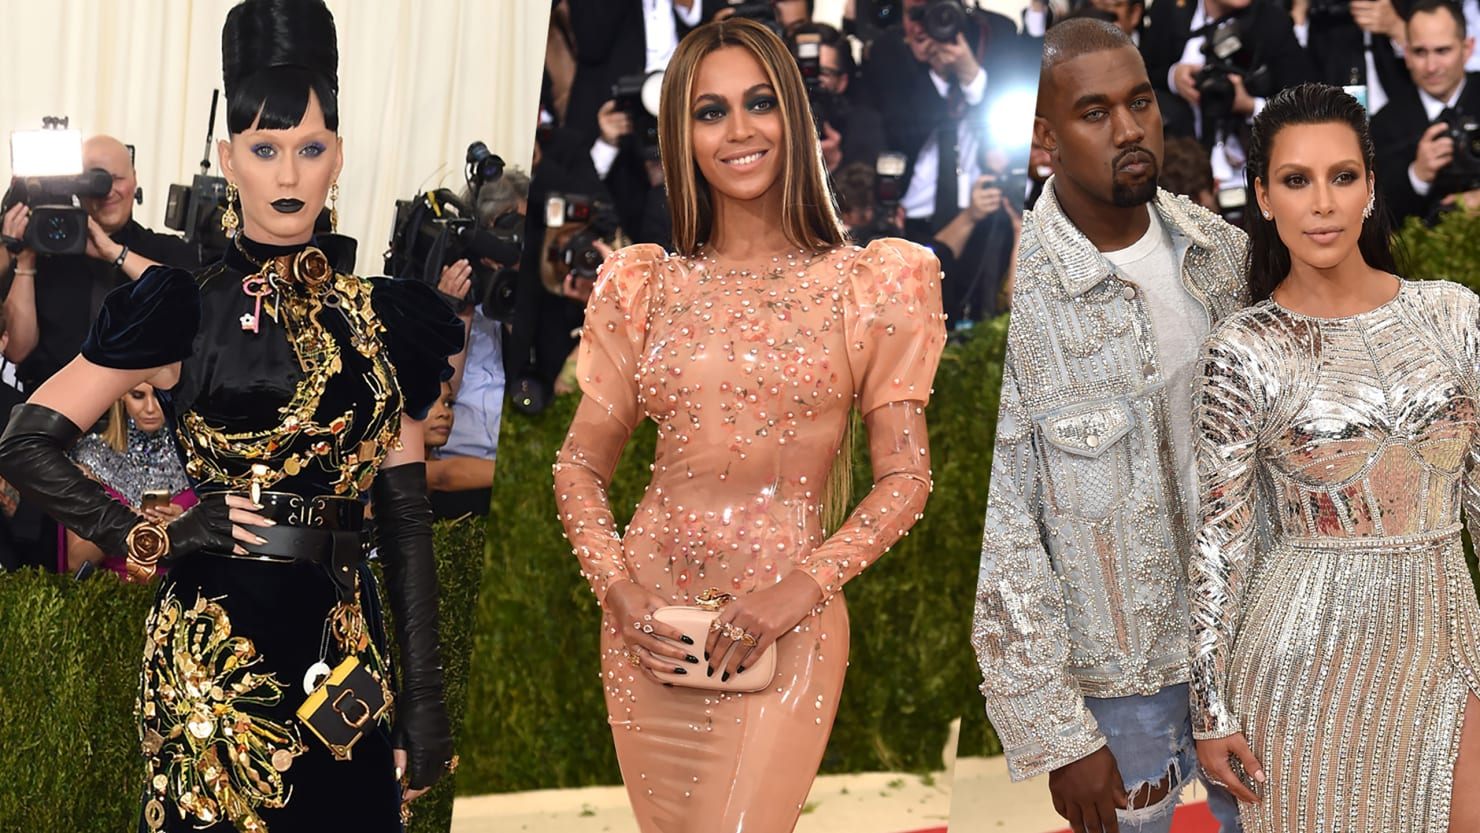 How Beyoncé and Katy Perry Won the Met Gala Red Carpet